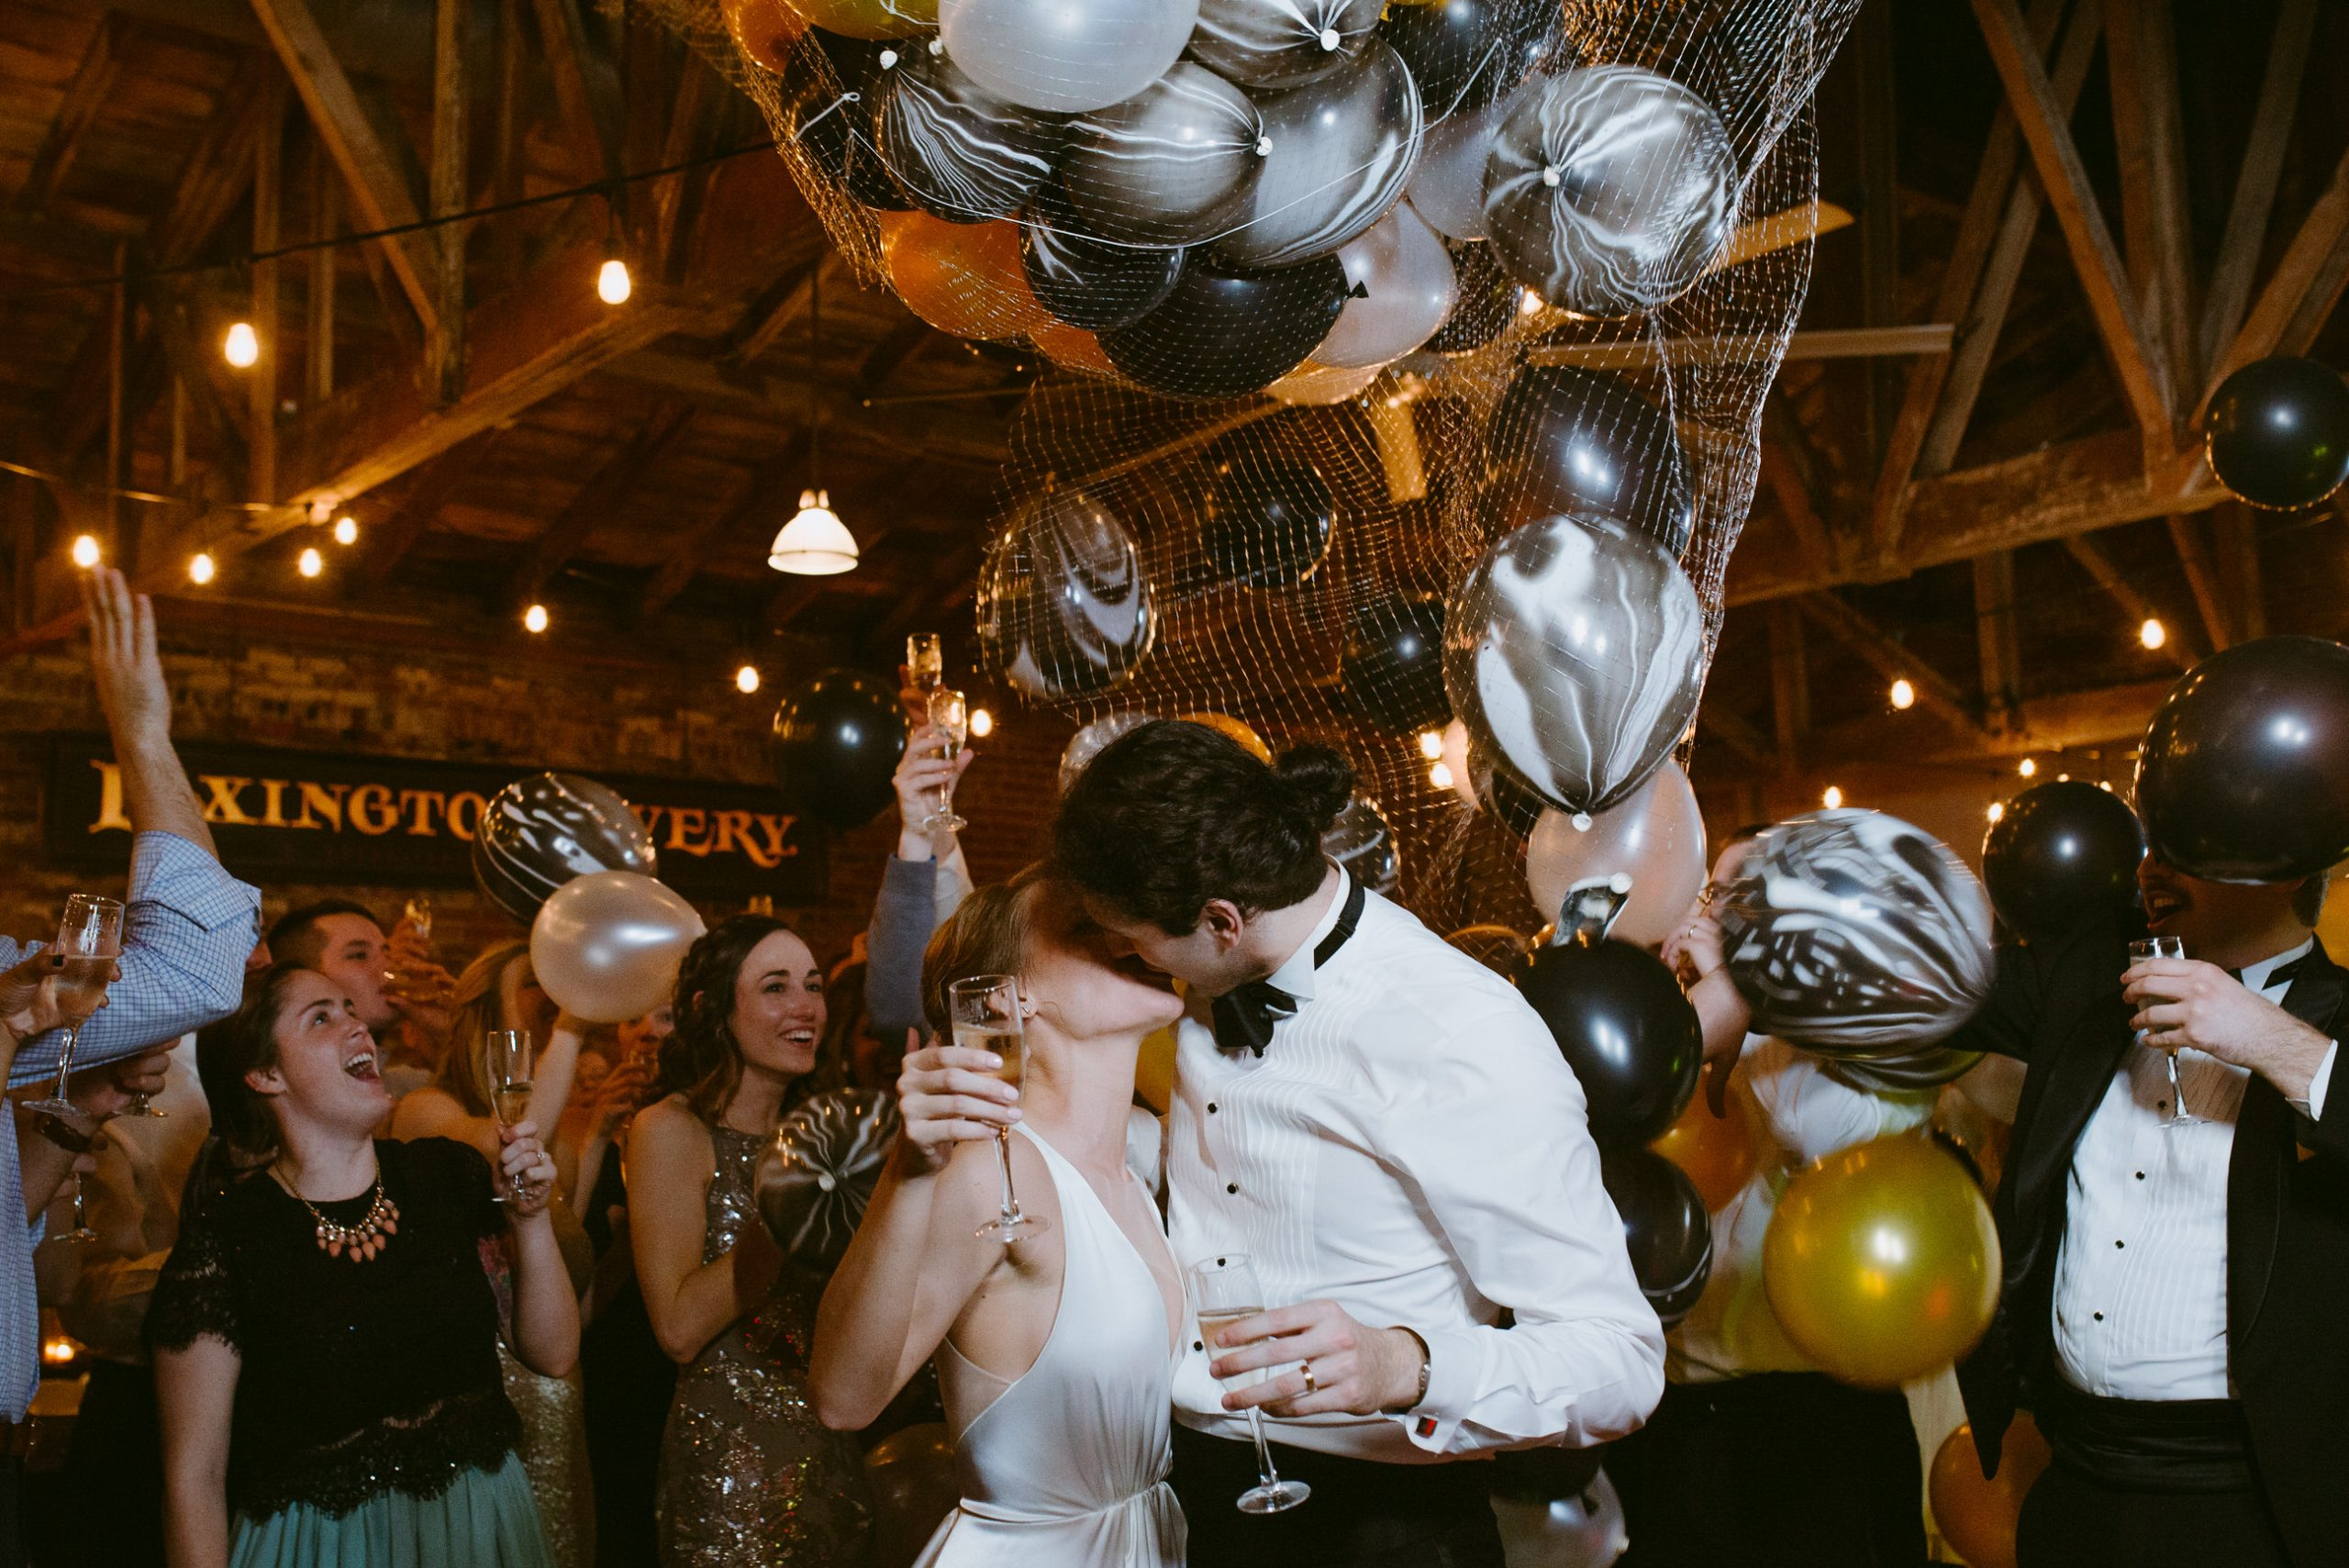 bride and groom kiss with champagne just after a new years balloon drop at Lexington Livery kentucky Venue while guests celebrate behind